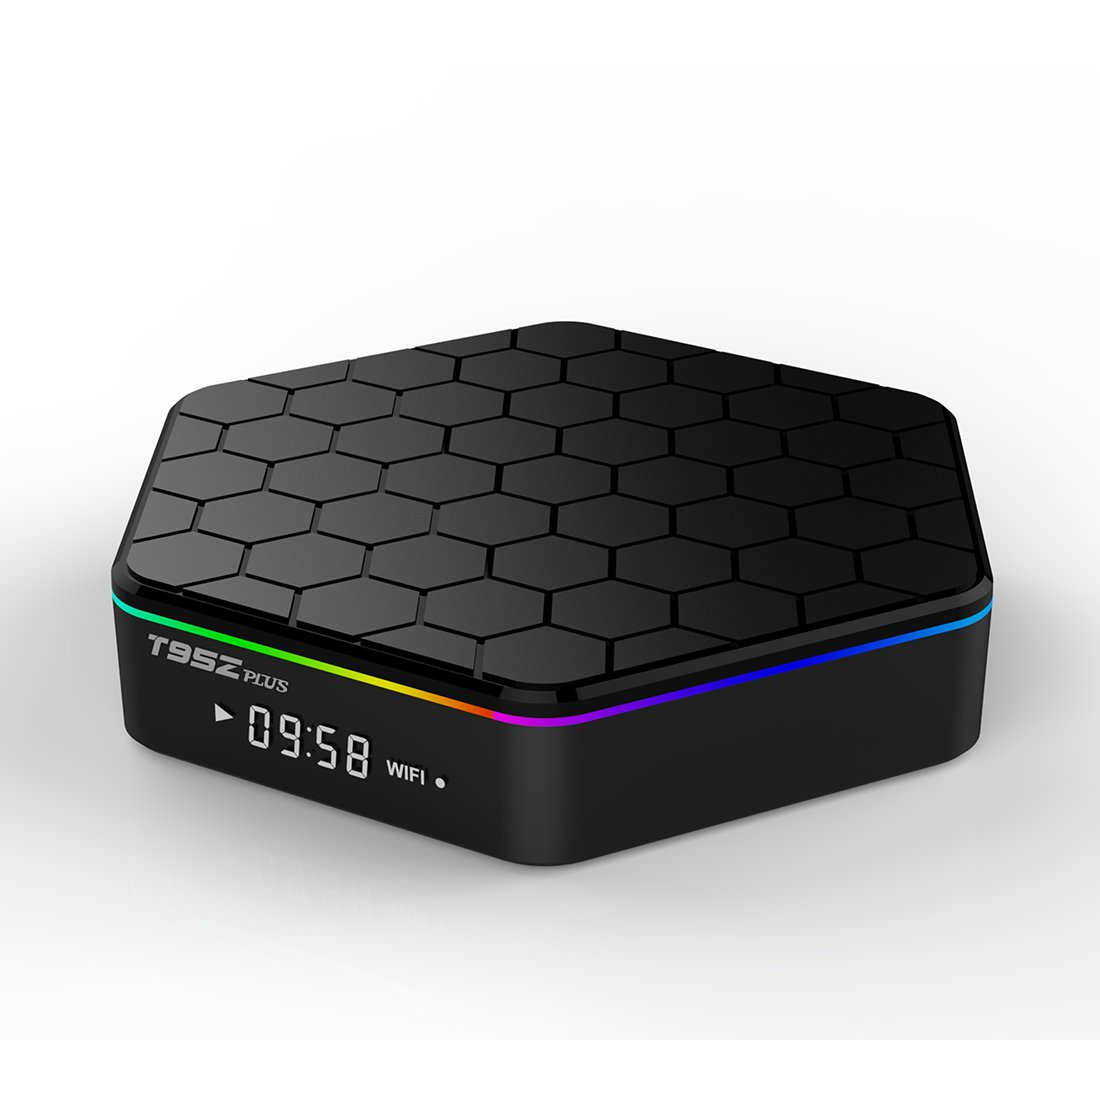 SeekEdge 2018 High Configuration Android TV Box with 64Bit Amlogic S912 8-core CPU 2GB Ram+16GB Rom EMMC and Supporting 4K (60Hz) Full HD/H.265/2.4G+5G Dual-Band WiFi/1000M lan